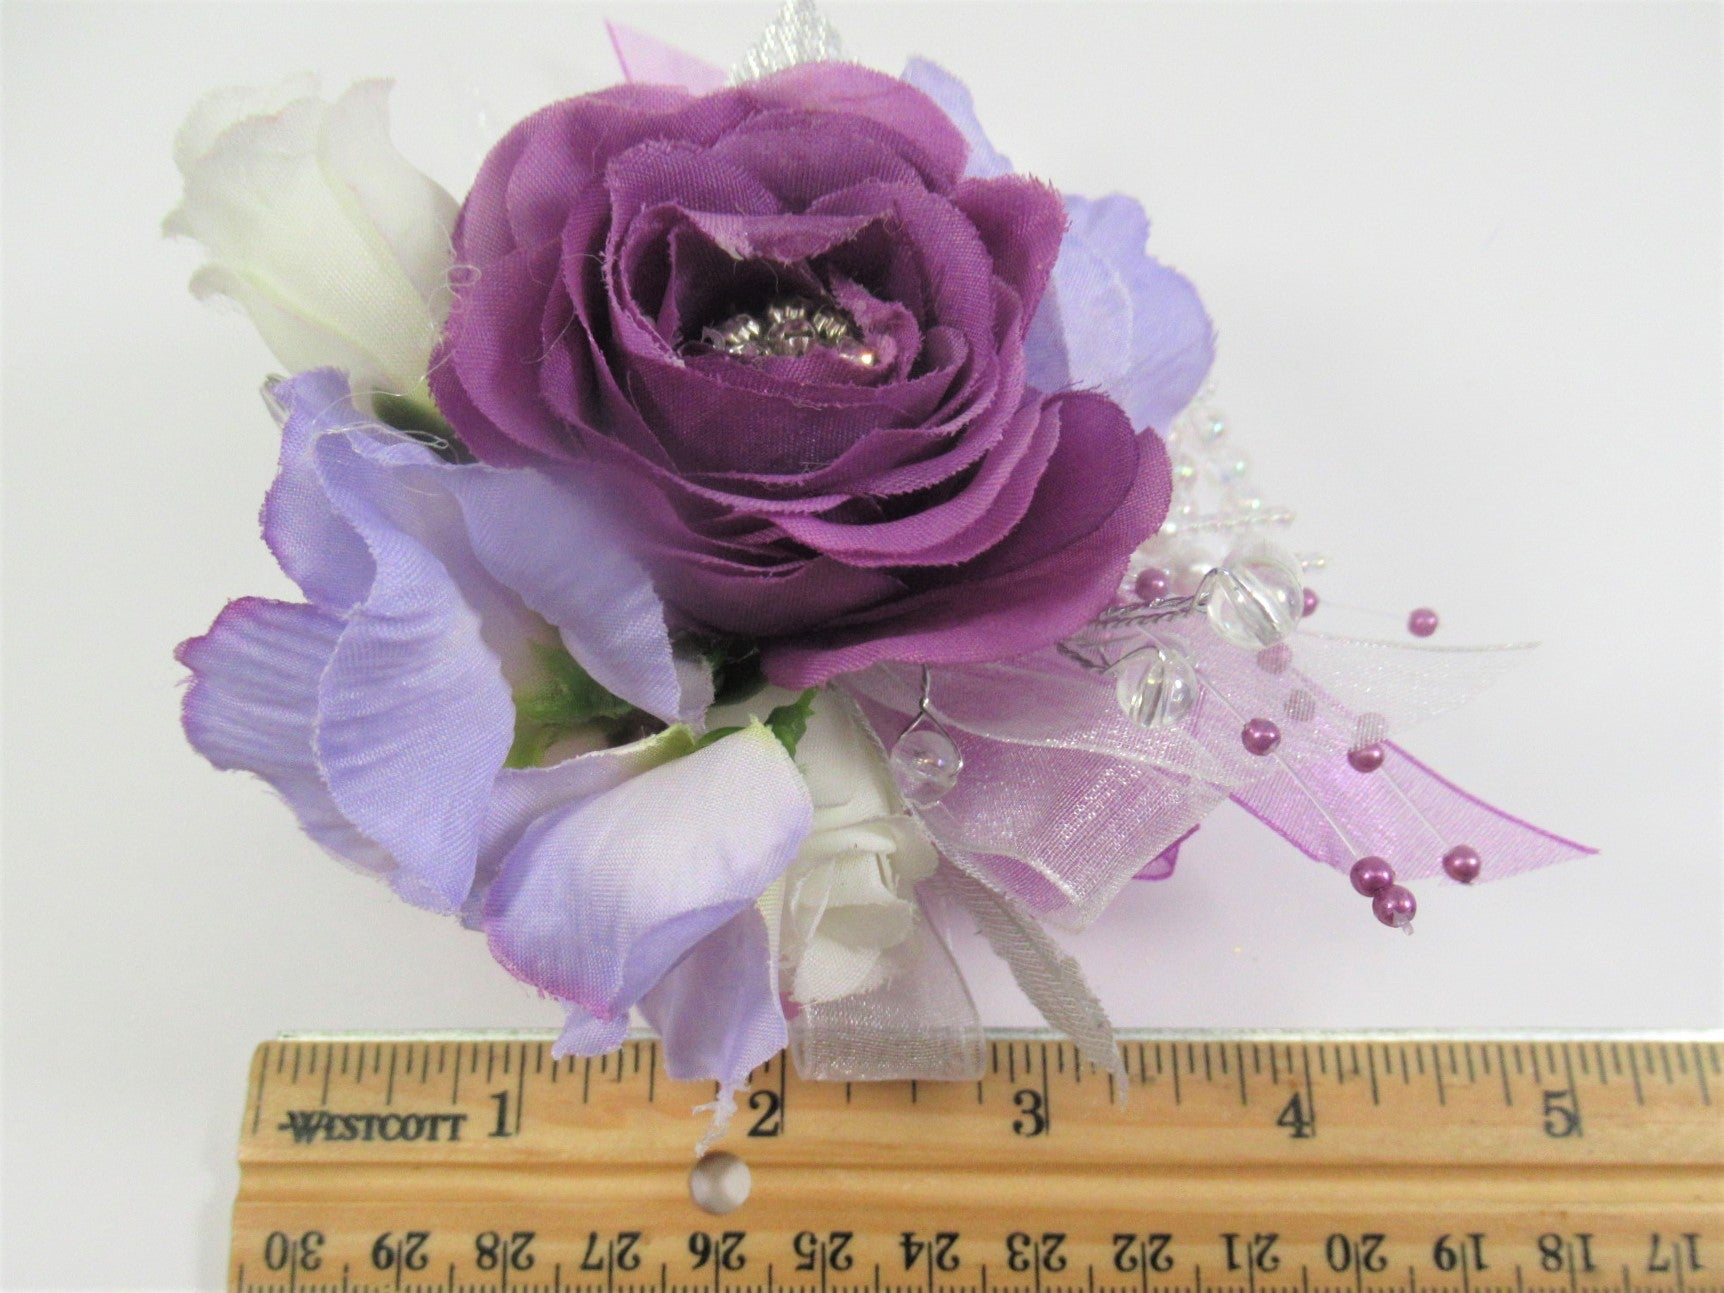 Petite Small Wrist Corsage in Purple Lavender and White Radiant Orchid Colors with Clear AB Beaded Bracelet - Odyssey Creations